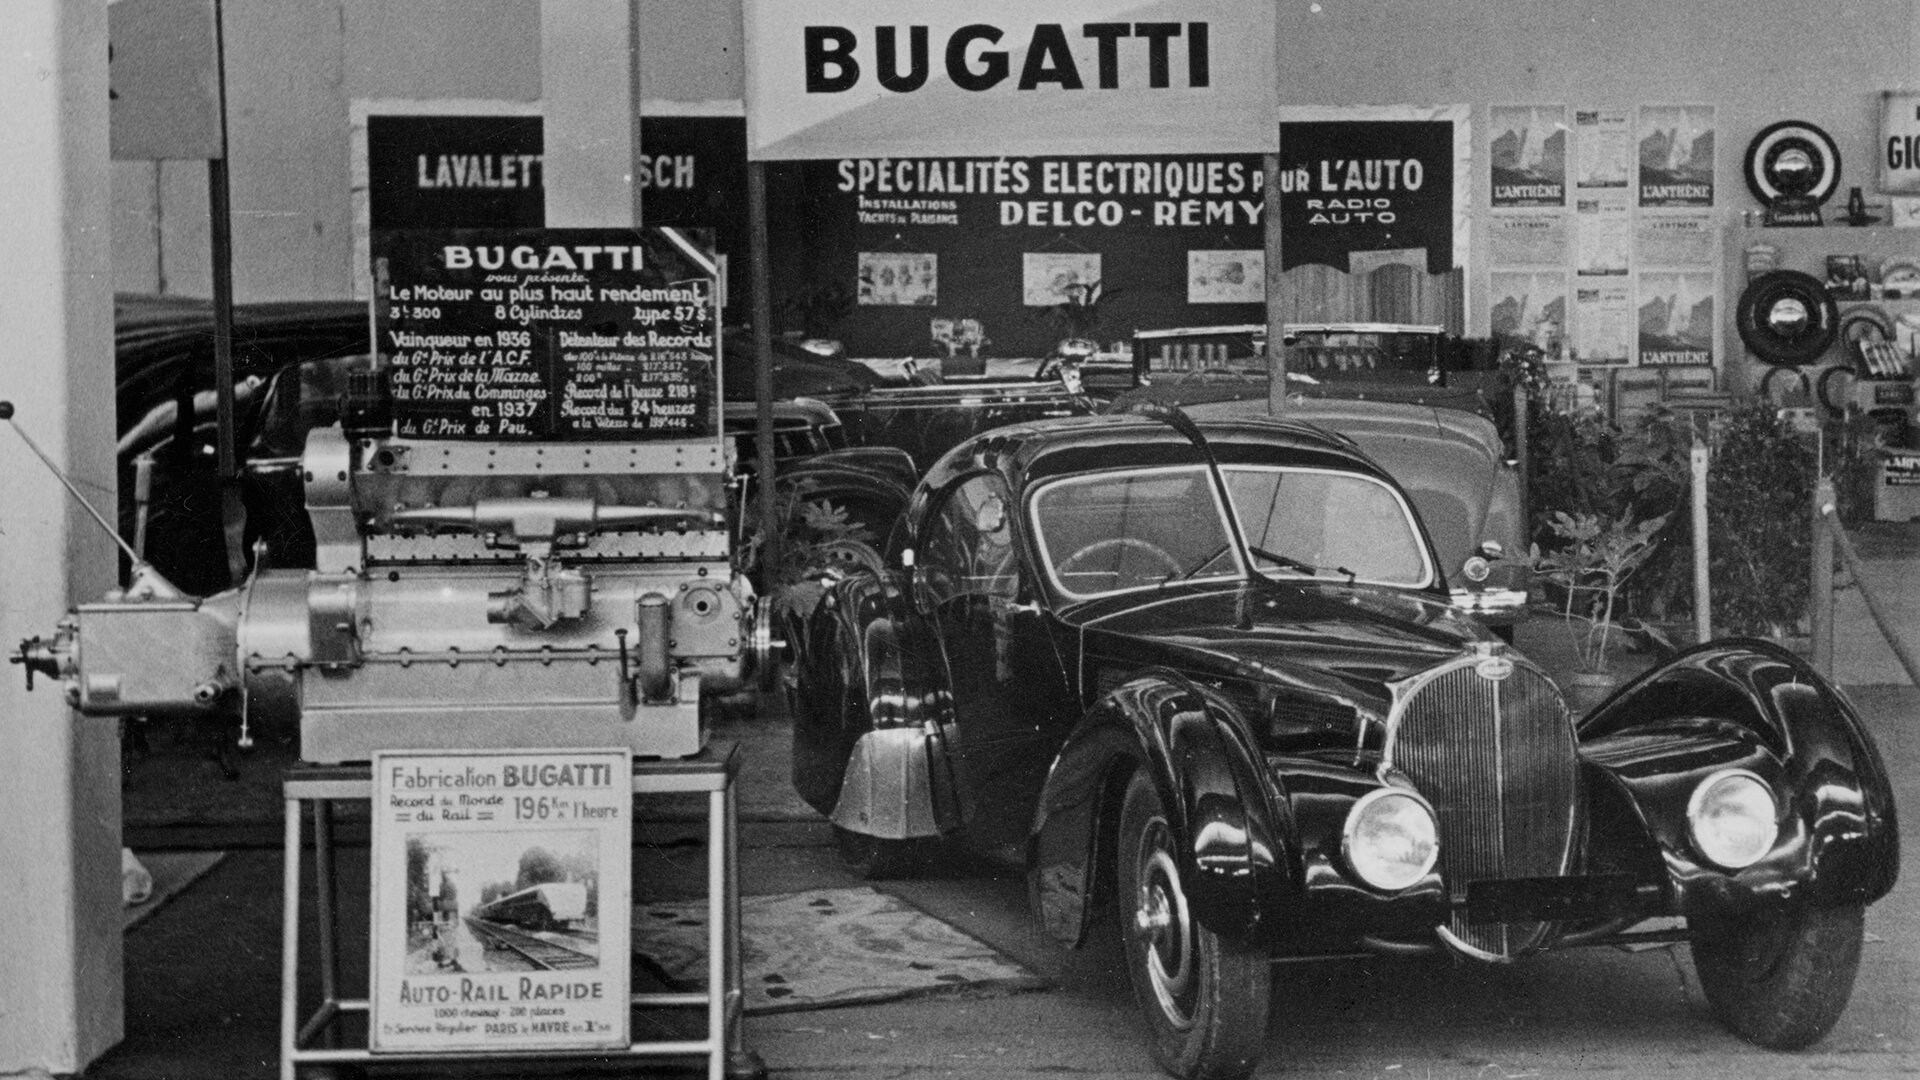 Bugatti retro Type 57 Atlantic